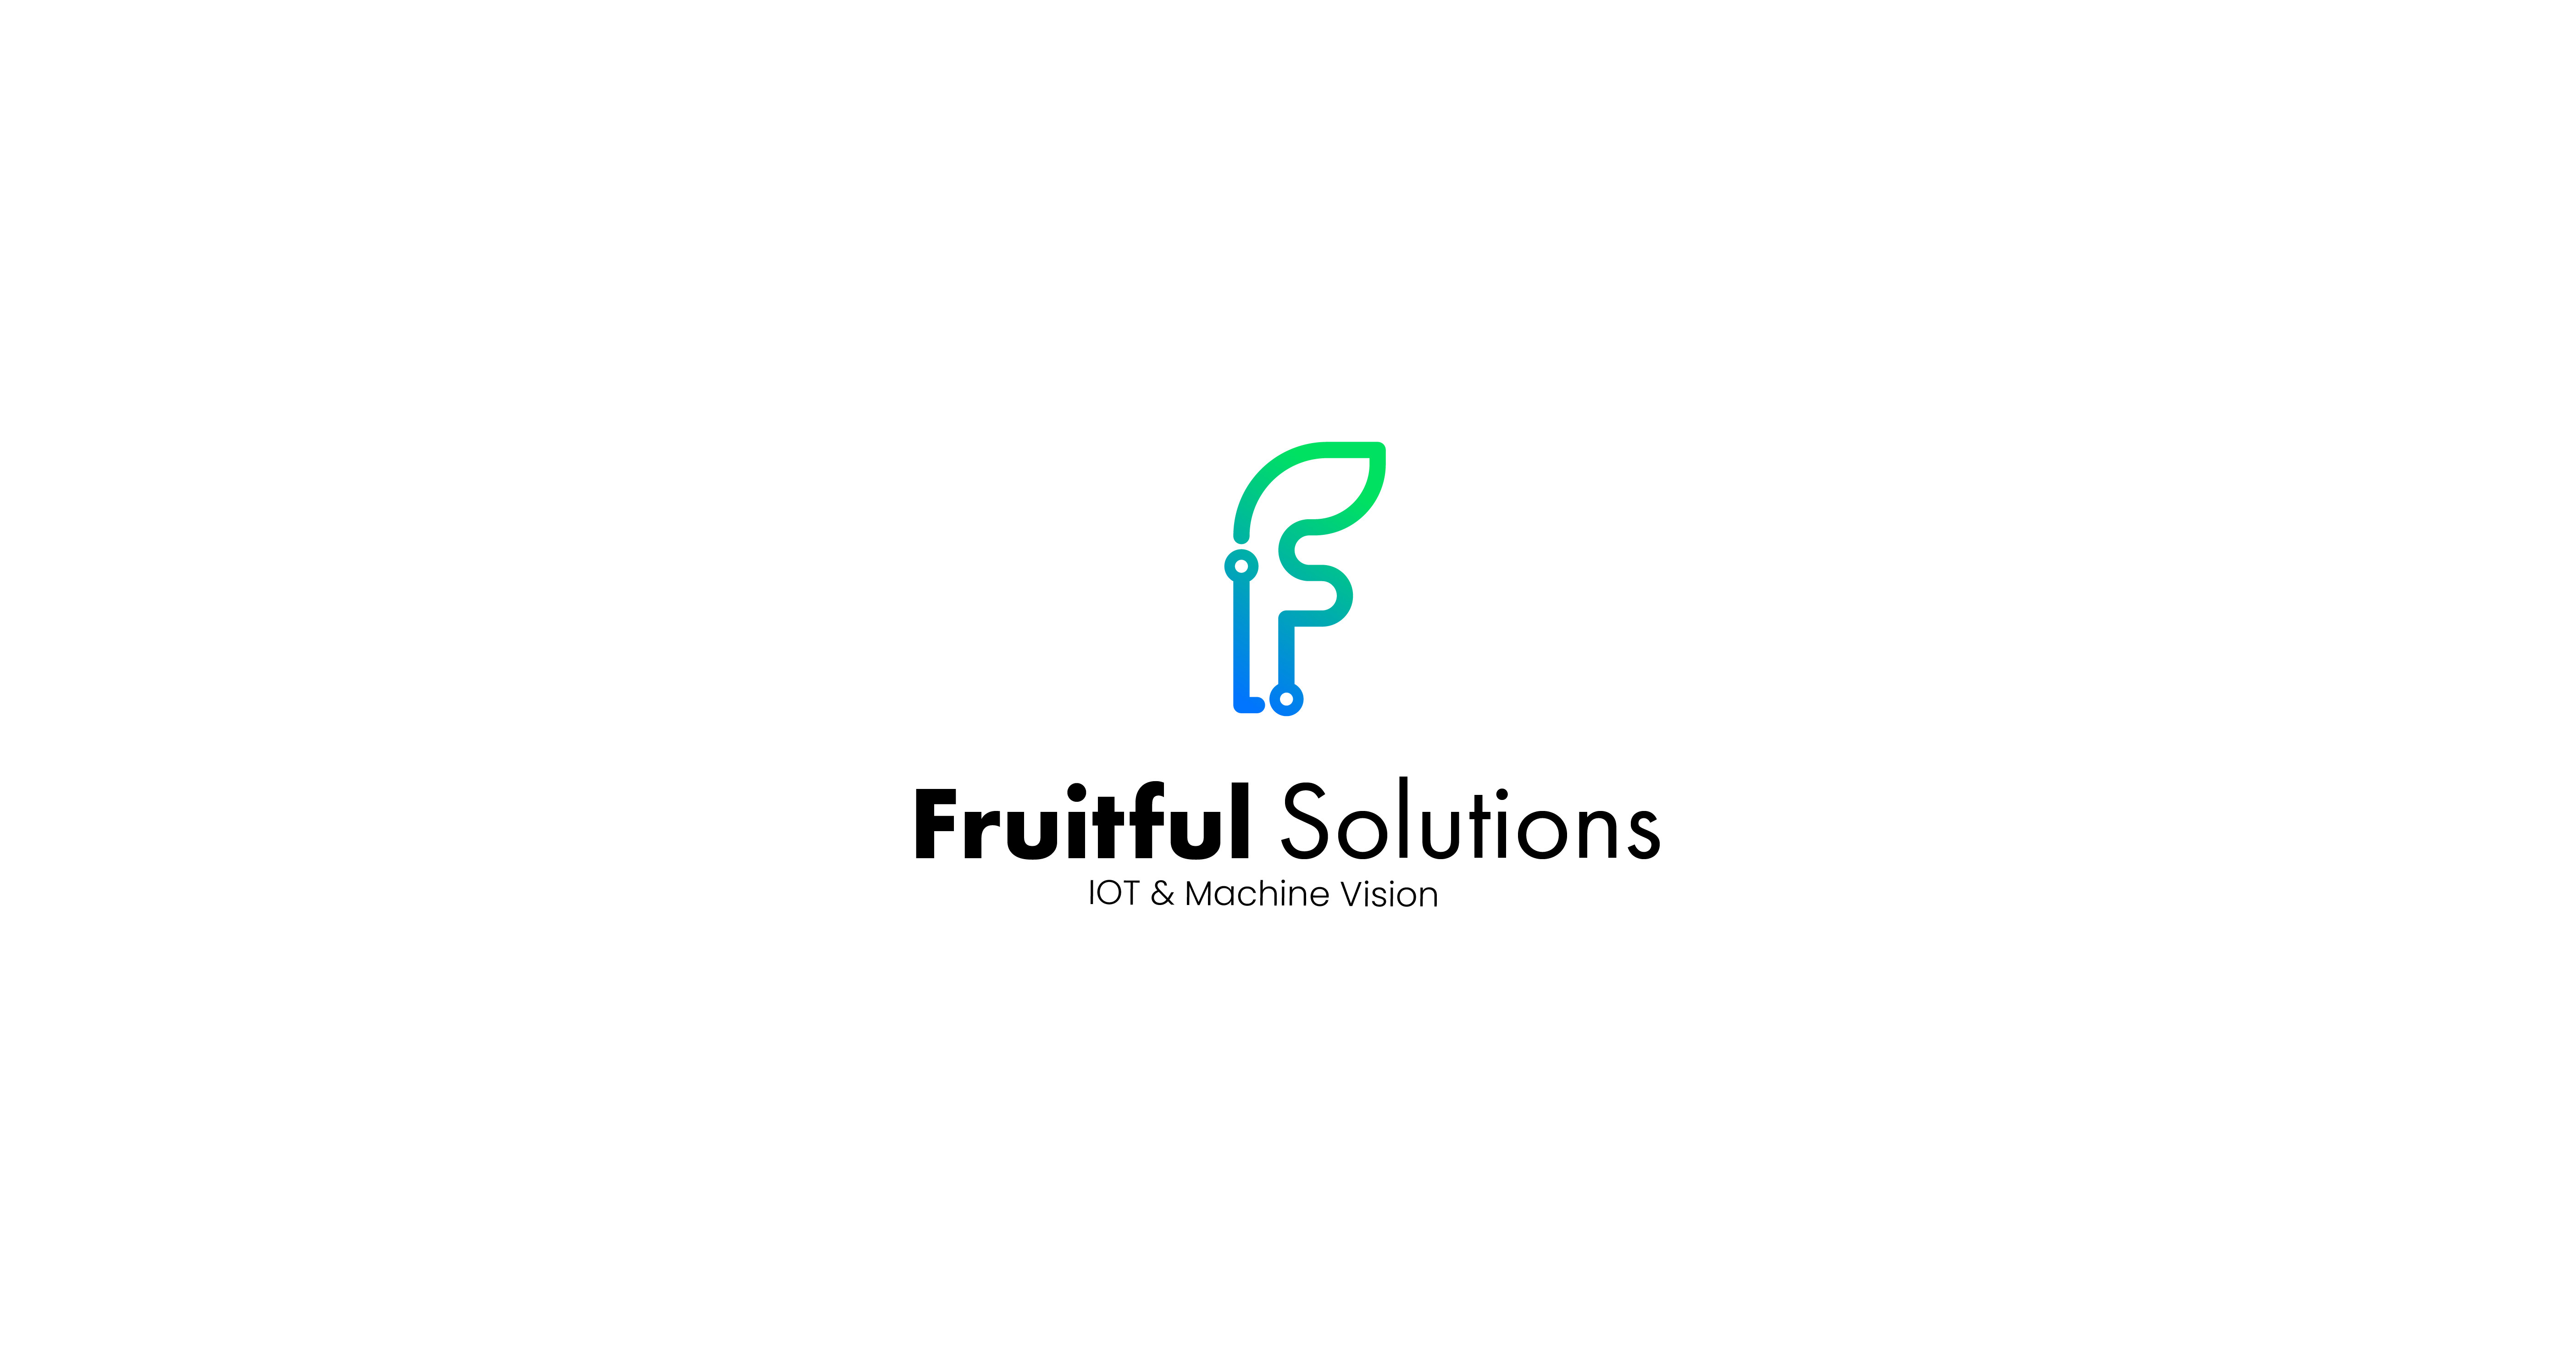 صورة Job: Desktop Application Developer at Fruitful Solutions in Cairo, Egypt